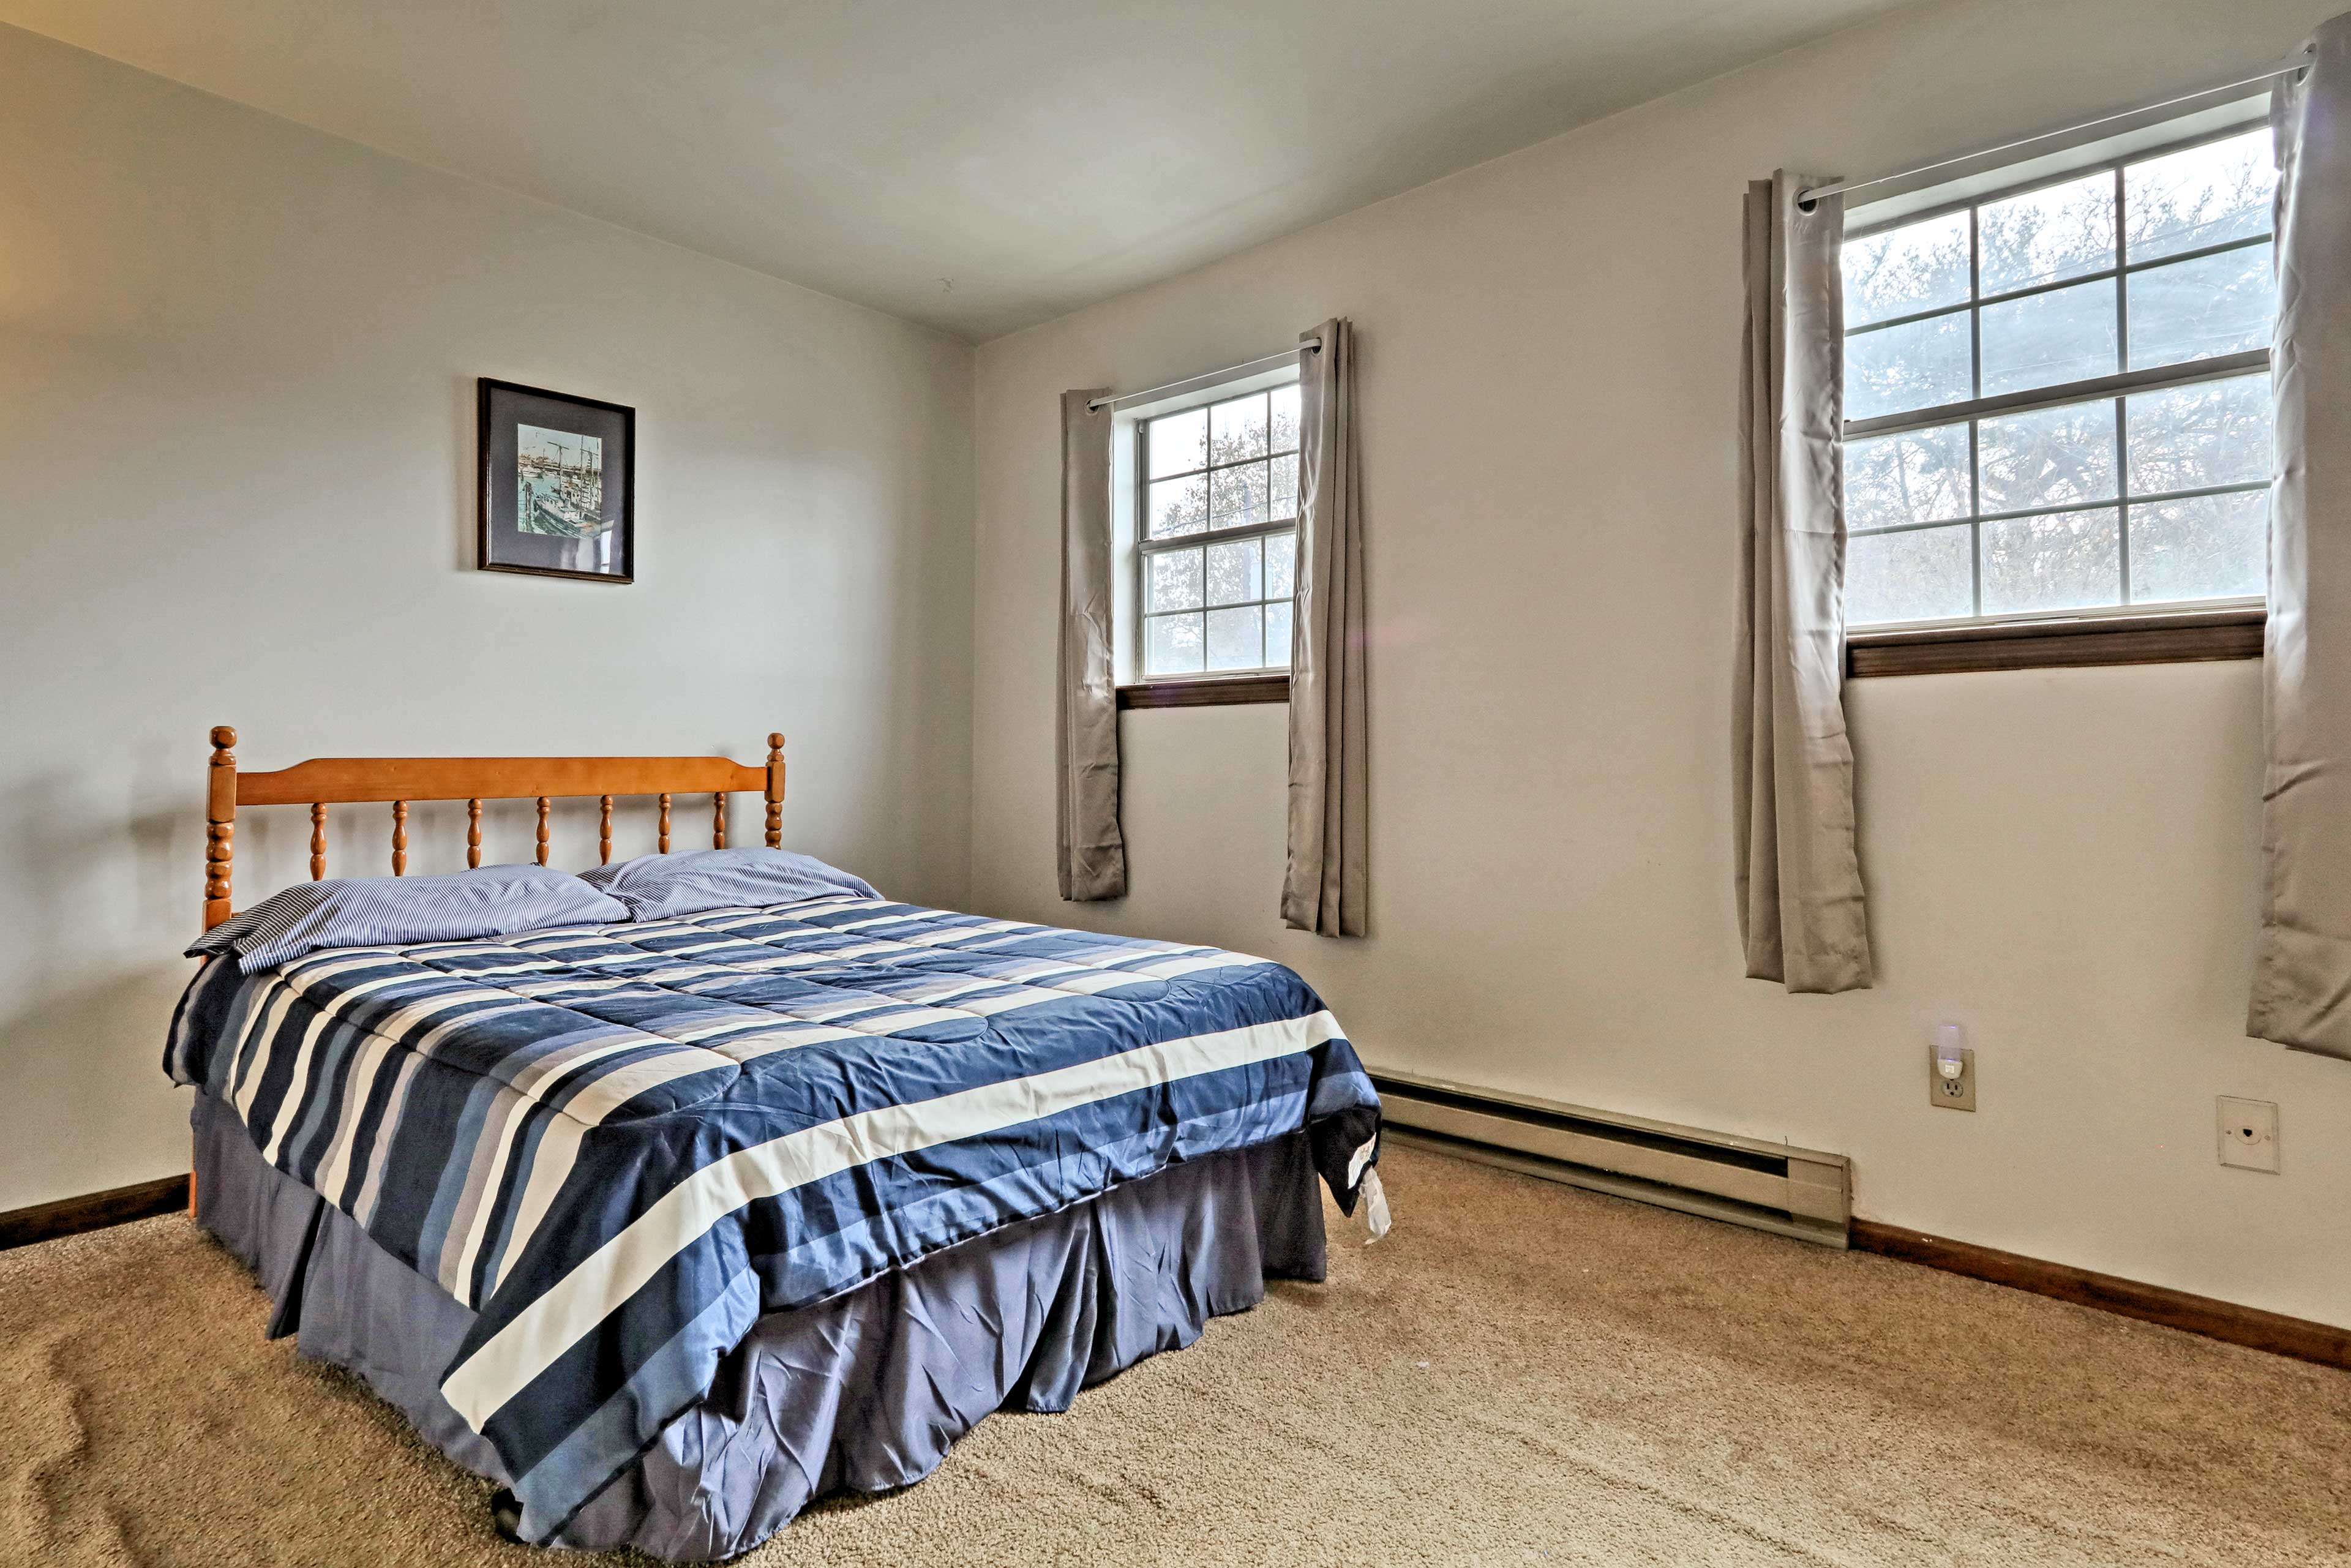 Another full bed can be found in the second bedroom.